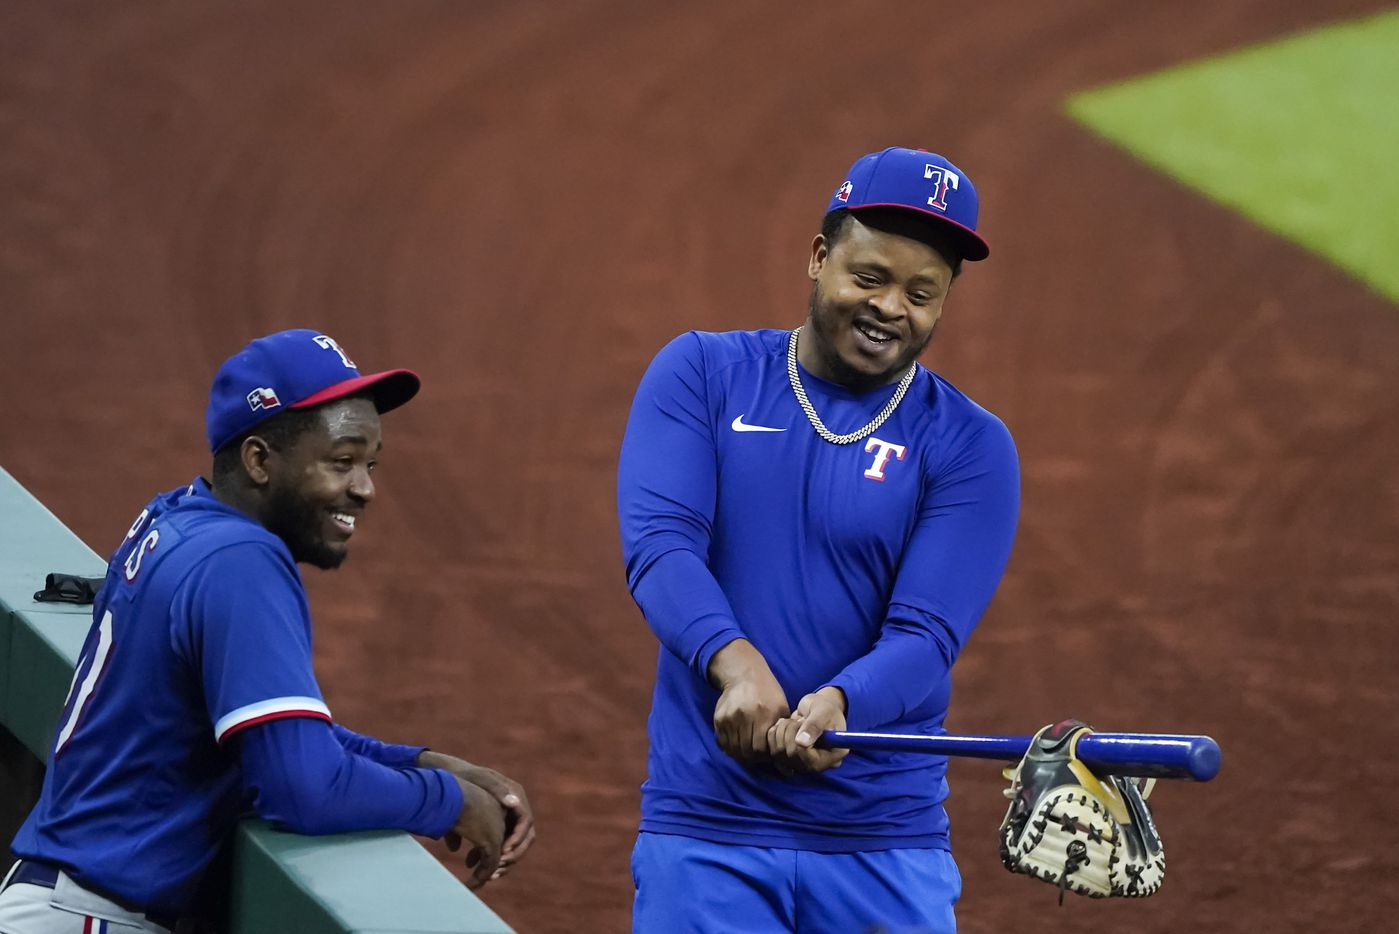 Texas Rangers pitcher Alex Speas (left) laughs with teammate Edinson Vólquez  between innings during a game between players at the team's alternate training site at Globe Life Field on Saturday, Sept. 19, 2020.